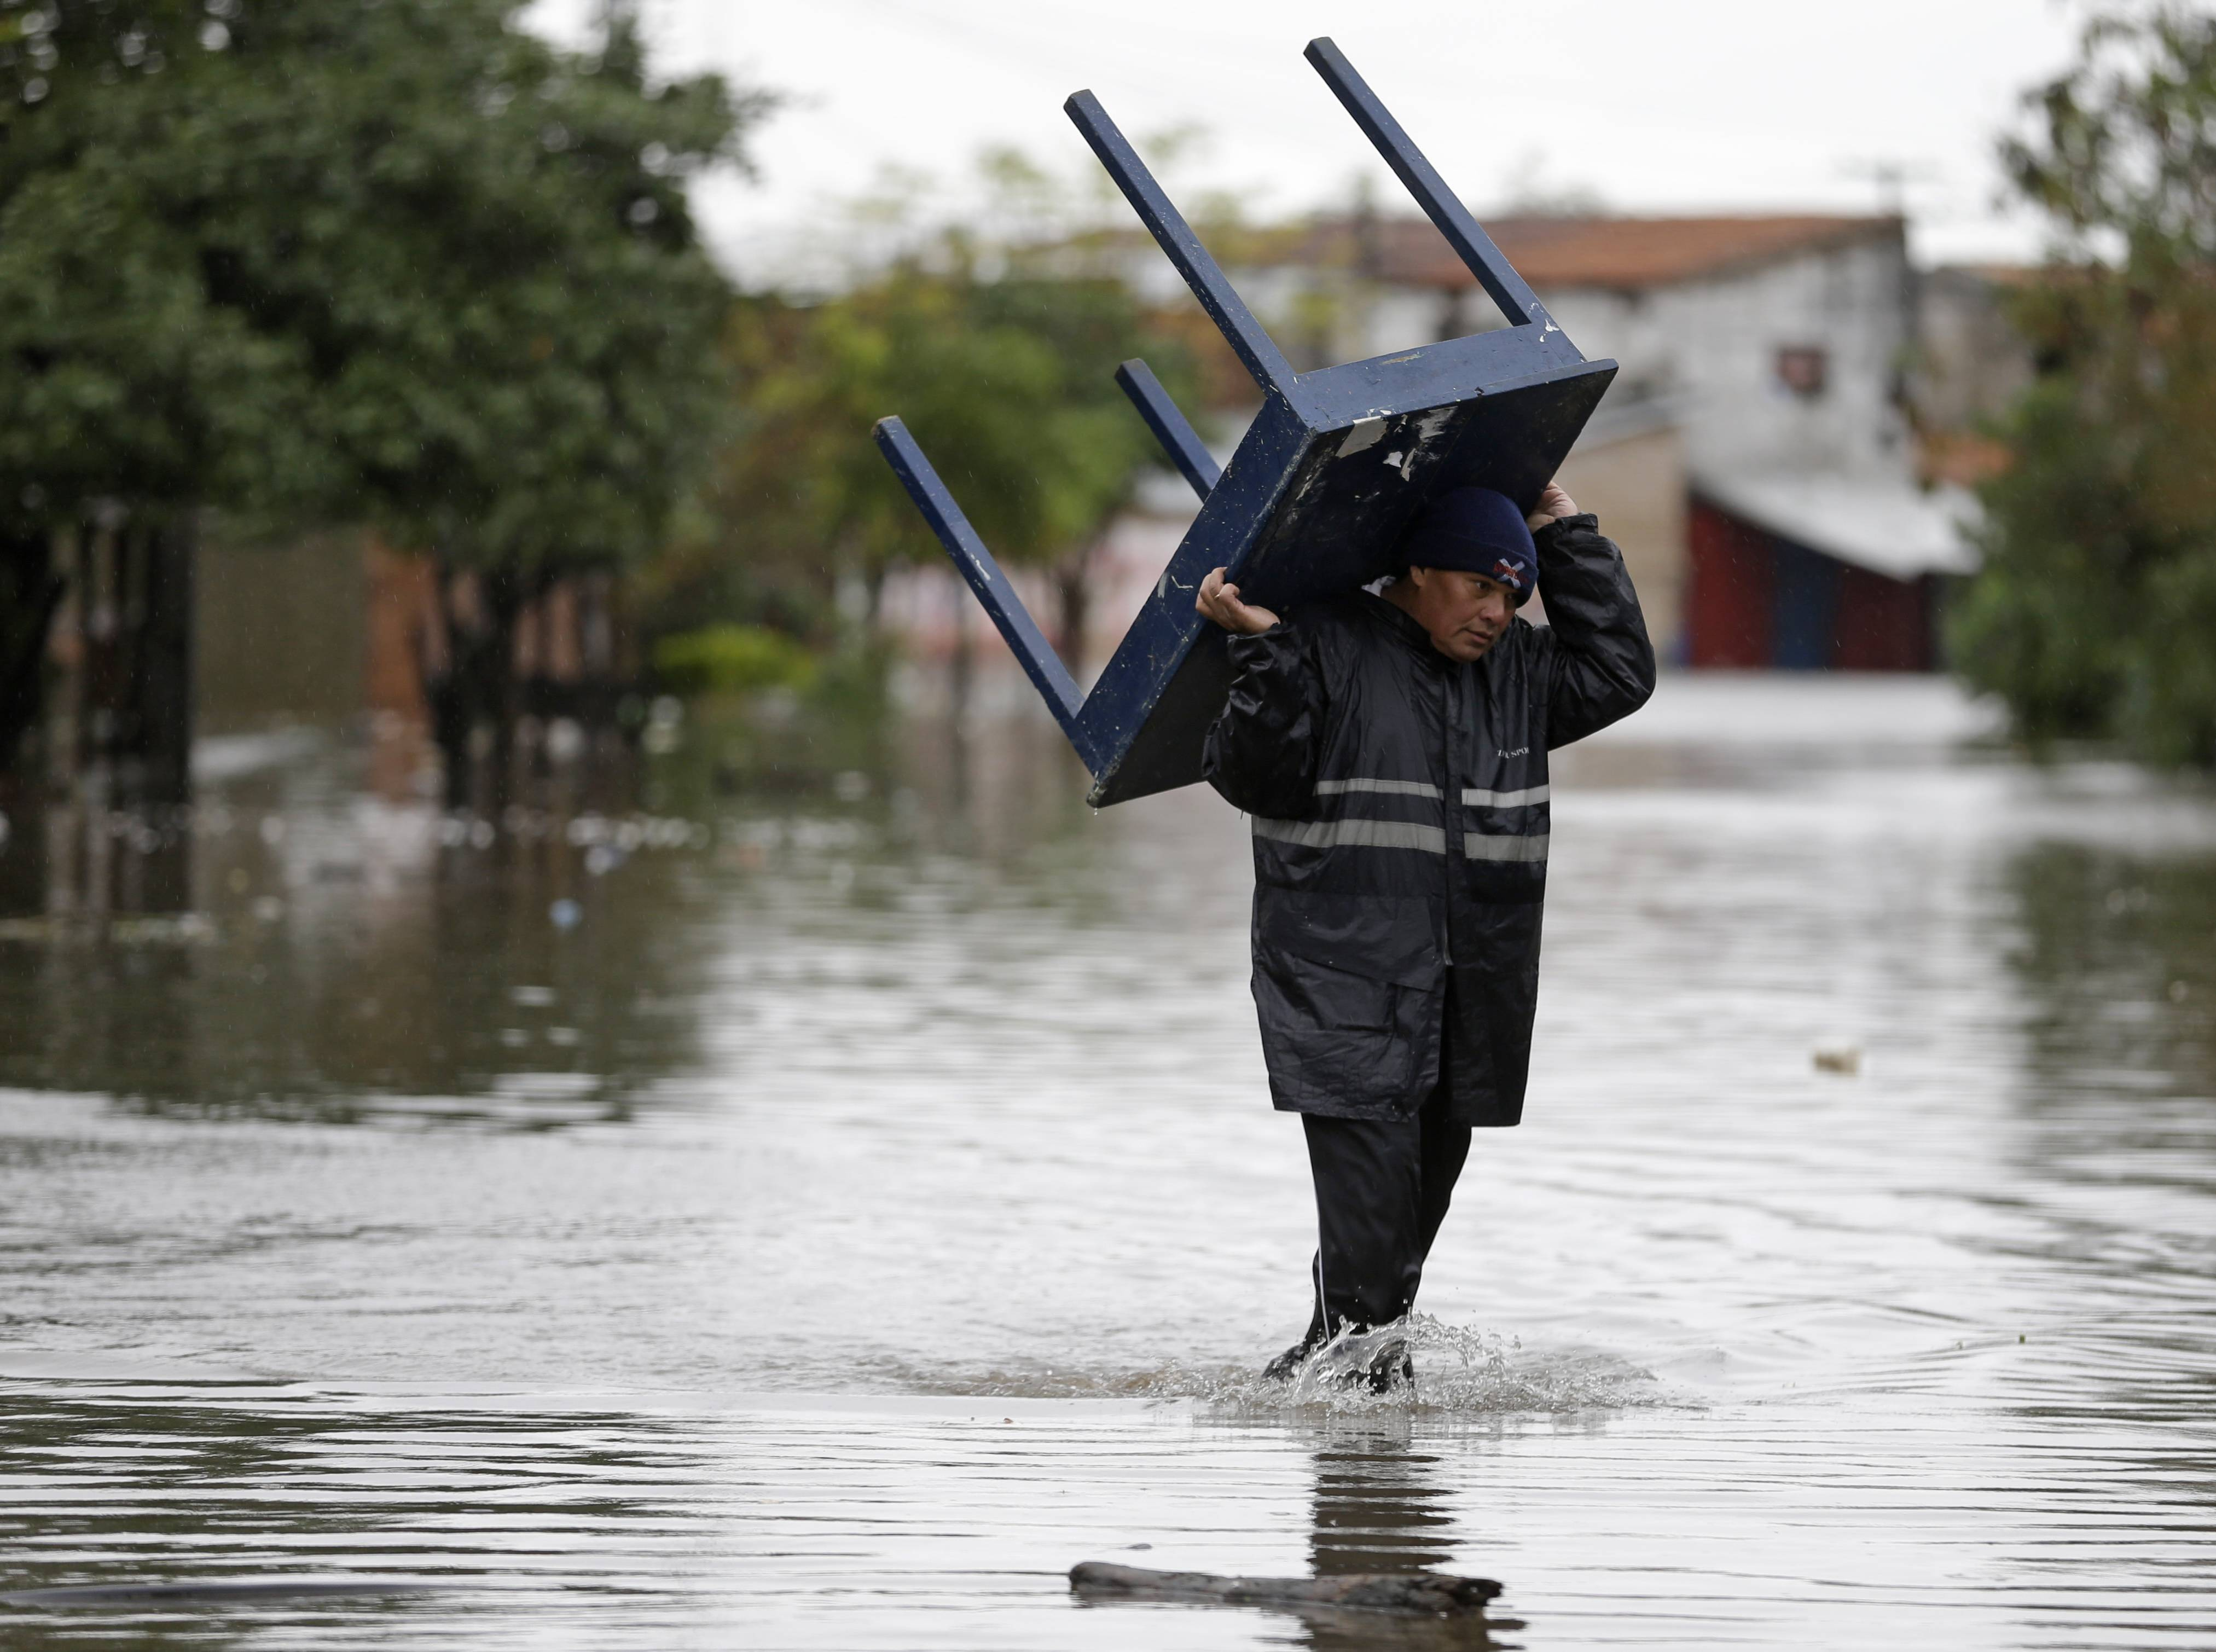 A man carries a table through a flooded street Friday in the Tacumbu neighborhood of Asuncion, Paraguay.